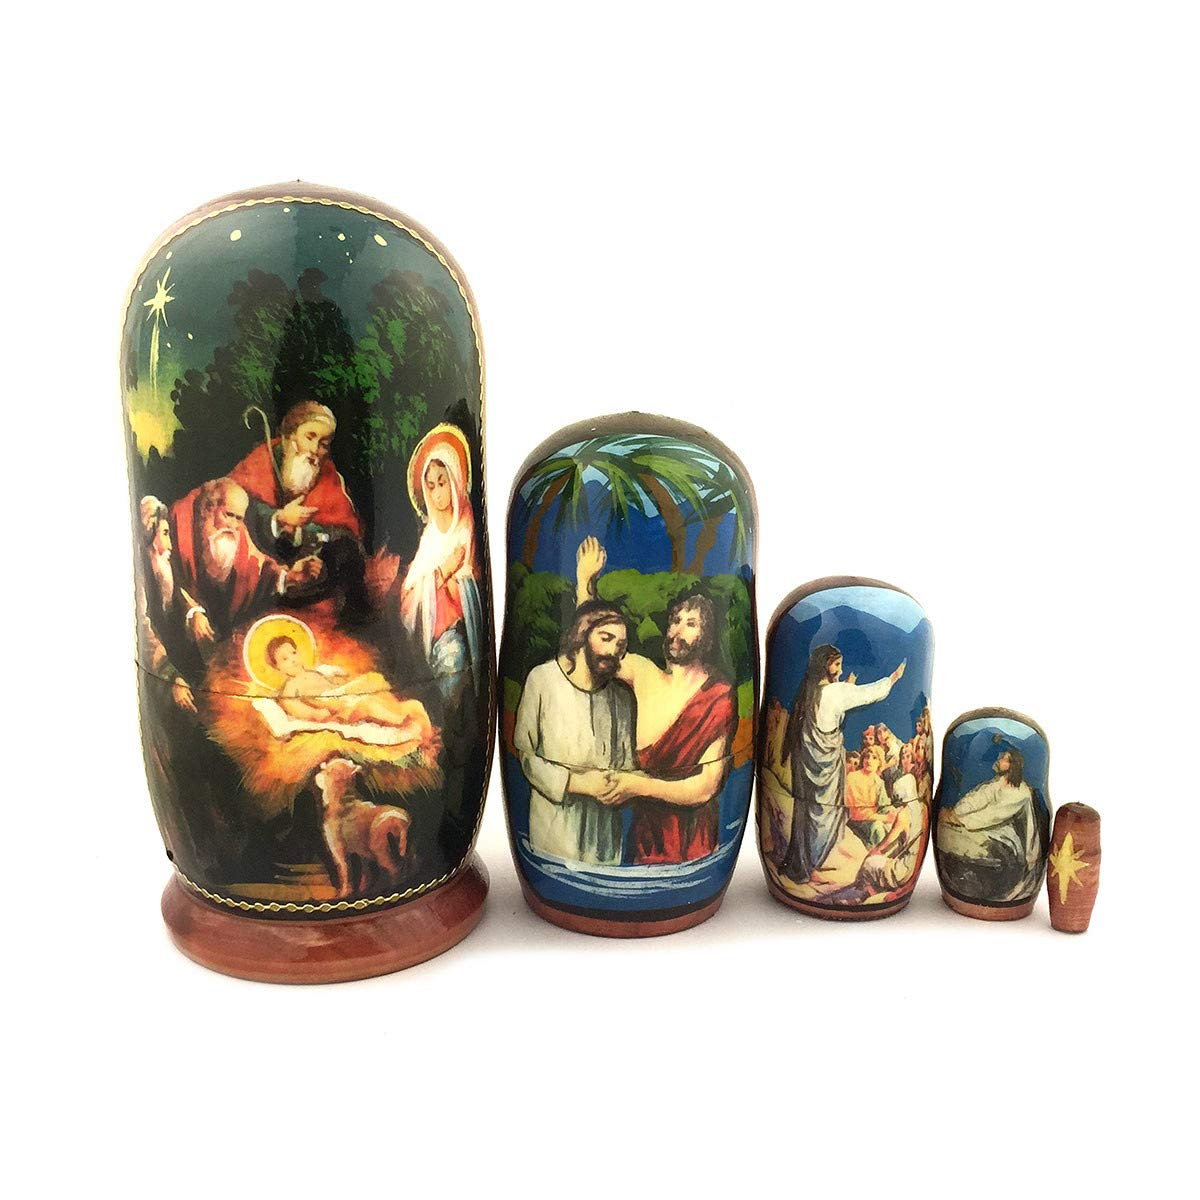 World Faith Russian Nesting Doll Nativity Doll Hand Painted 5 Nested 4-1/4 Inch Nesting Doll